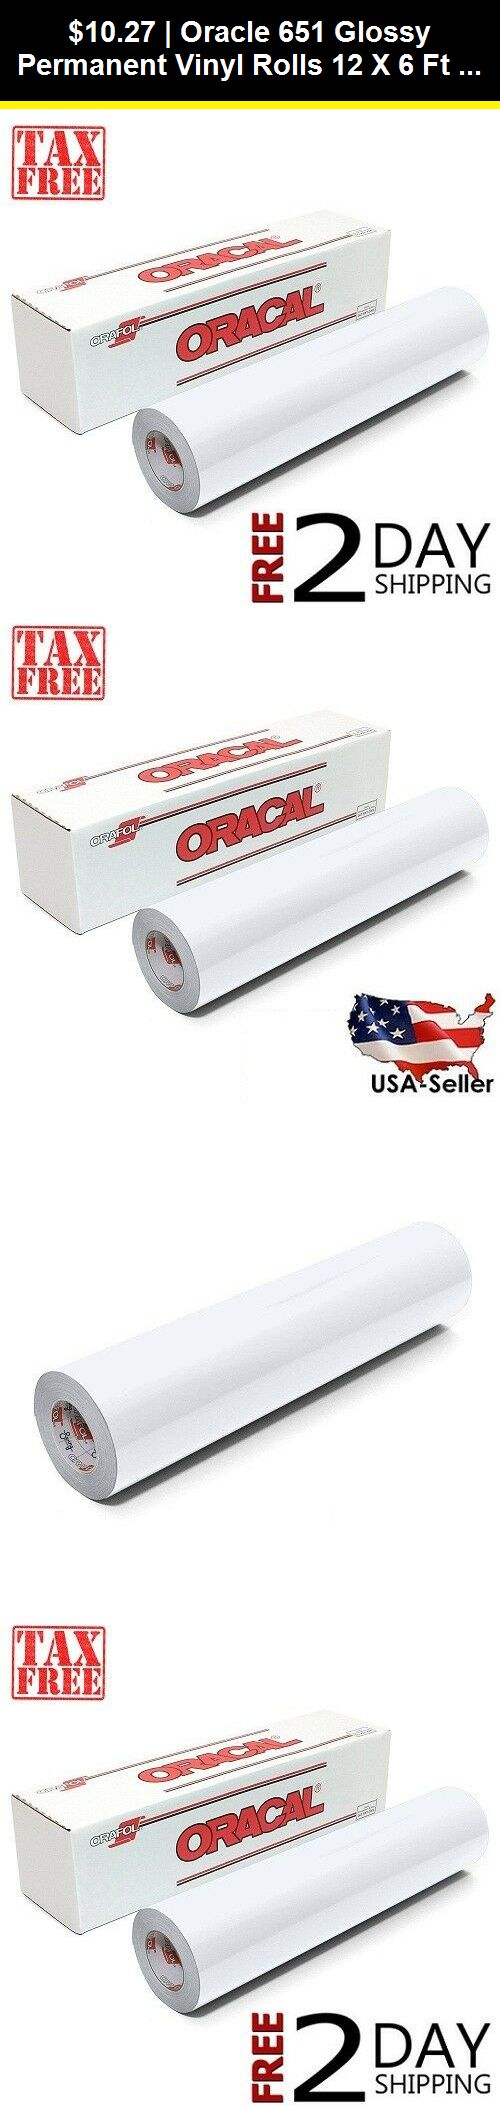 Scrapbooking And Paper Crafts 11788 Oracle 651 Glossy Permanent Vinyl Rolls 12 X 6 Ft R White Permanent Adhesive Buy It N With Images Permanent Vinyl Vinyl Vinyl Rolls